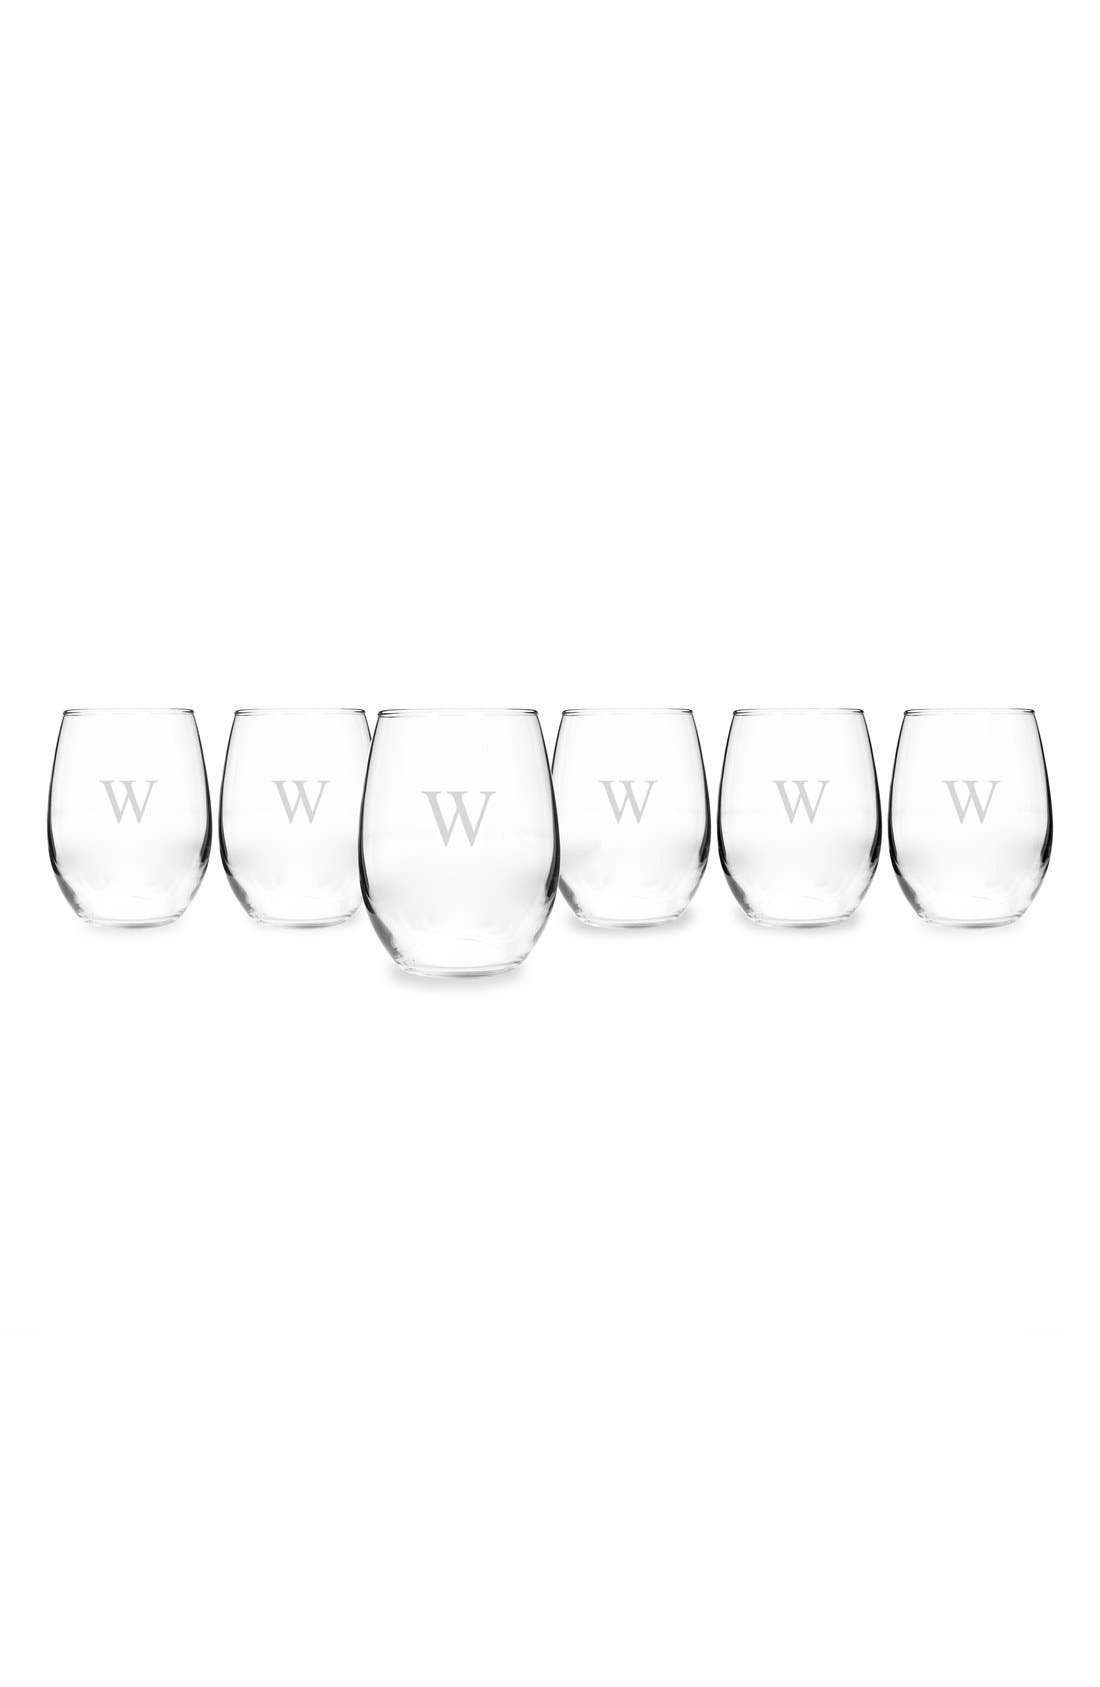 CATHY'S CONCEPTS, Set of 6 Monogram Stemless Wine Glasses, Alternate thumbnail 3, color, W